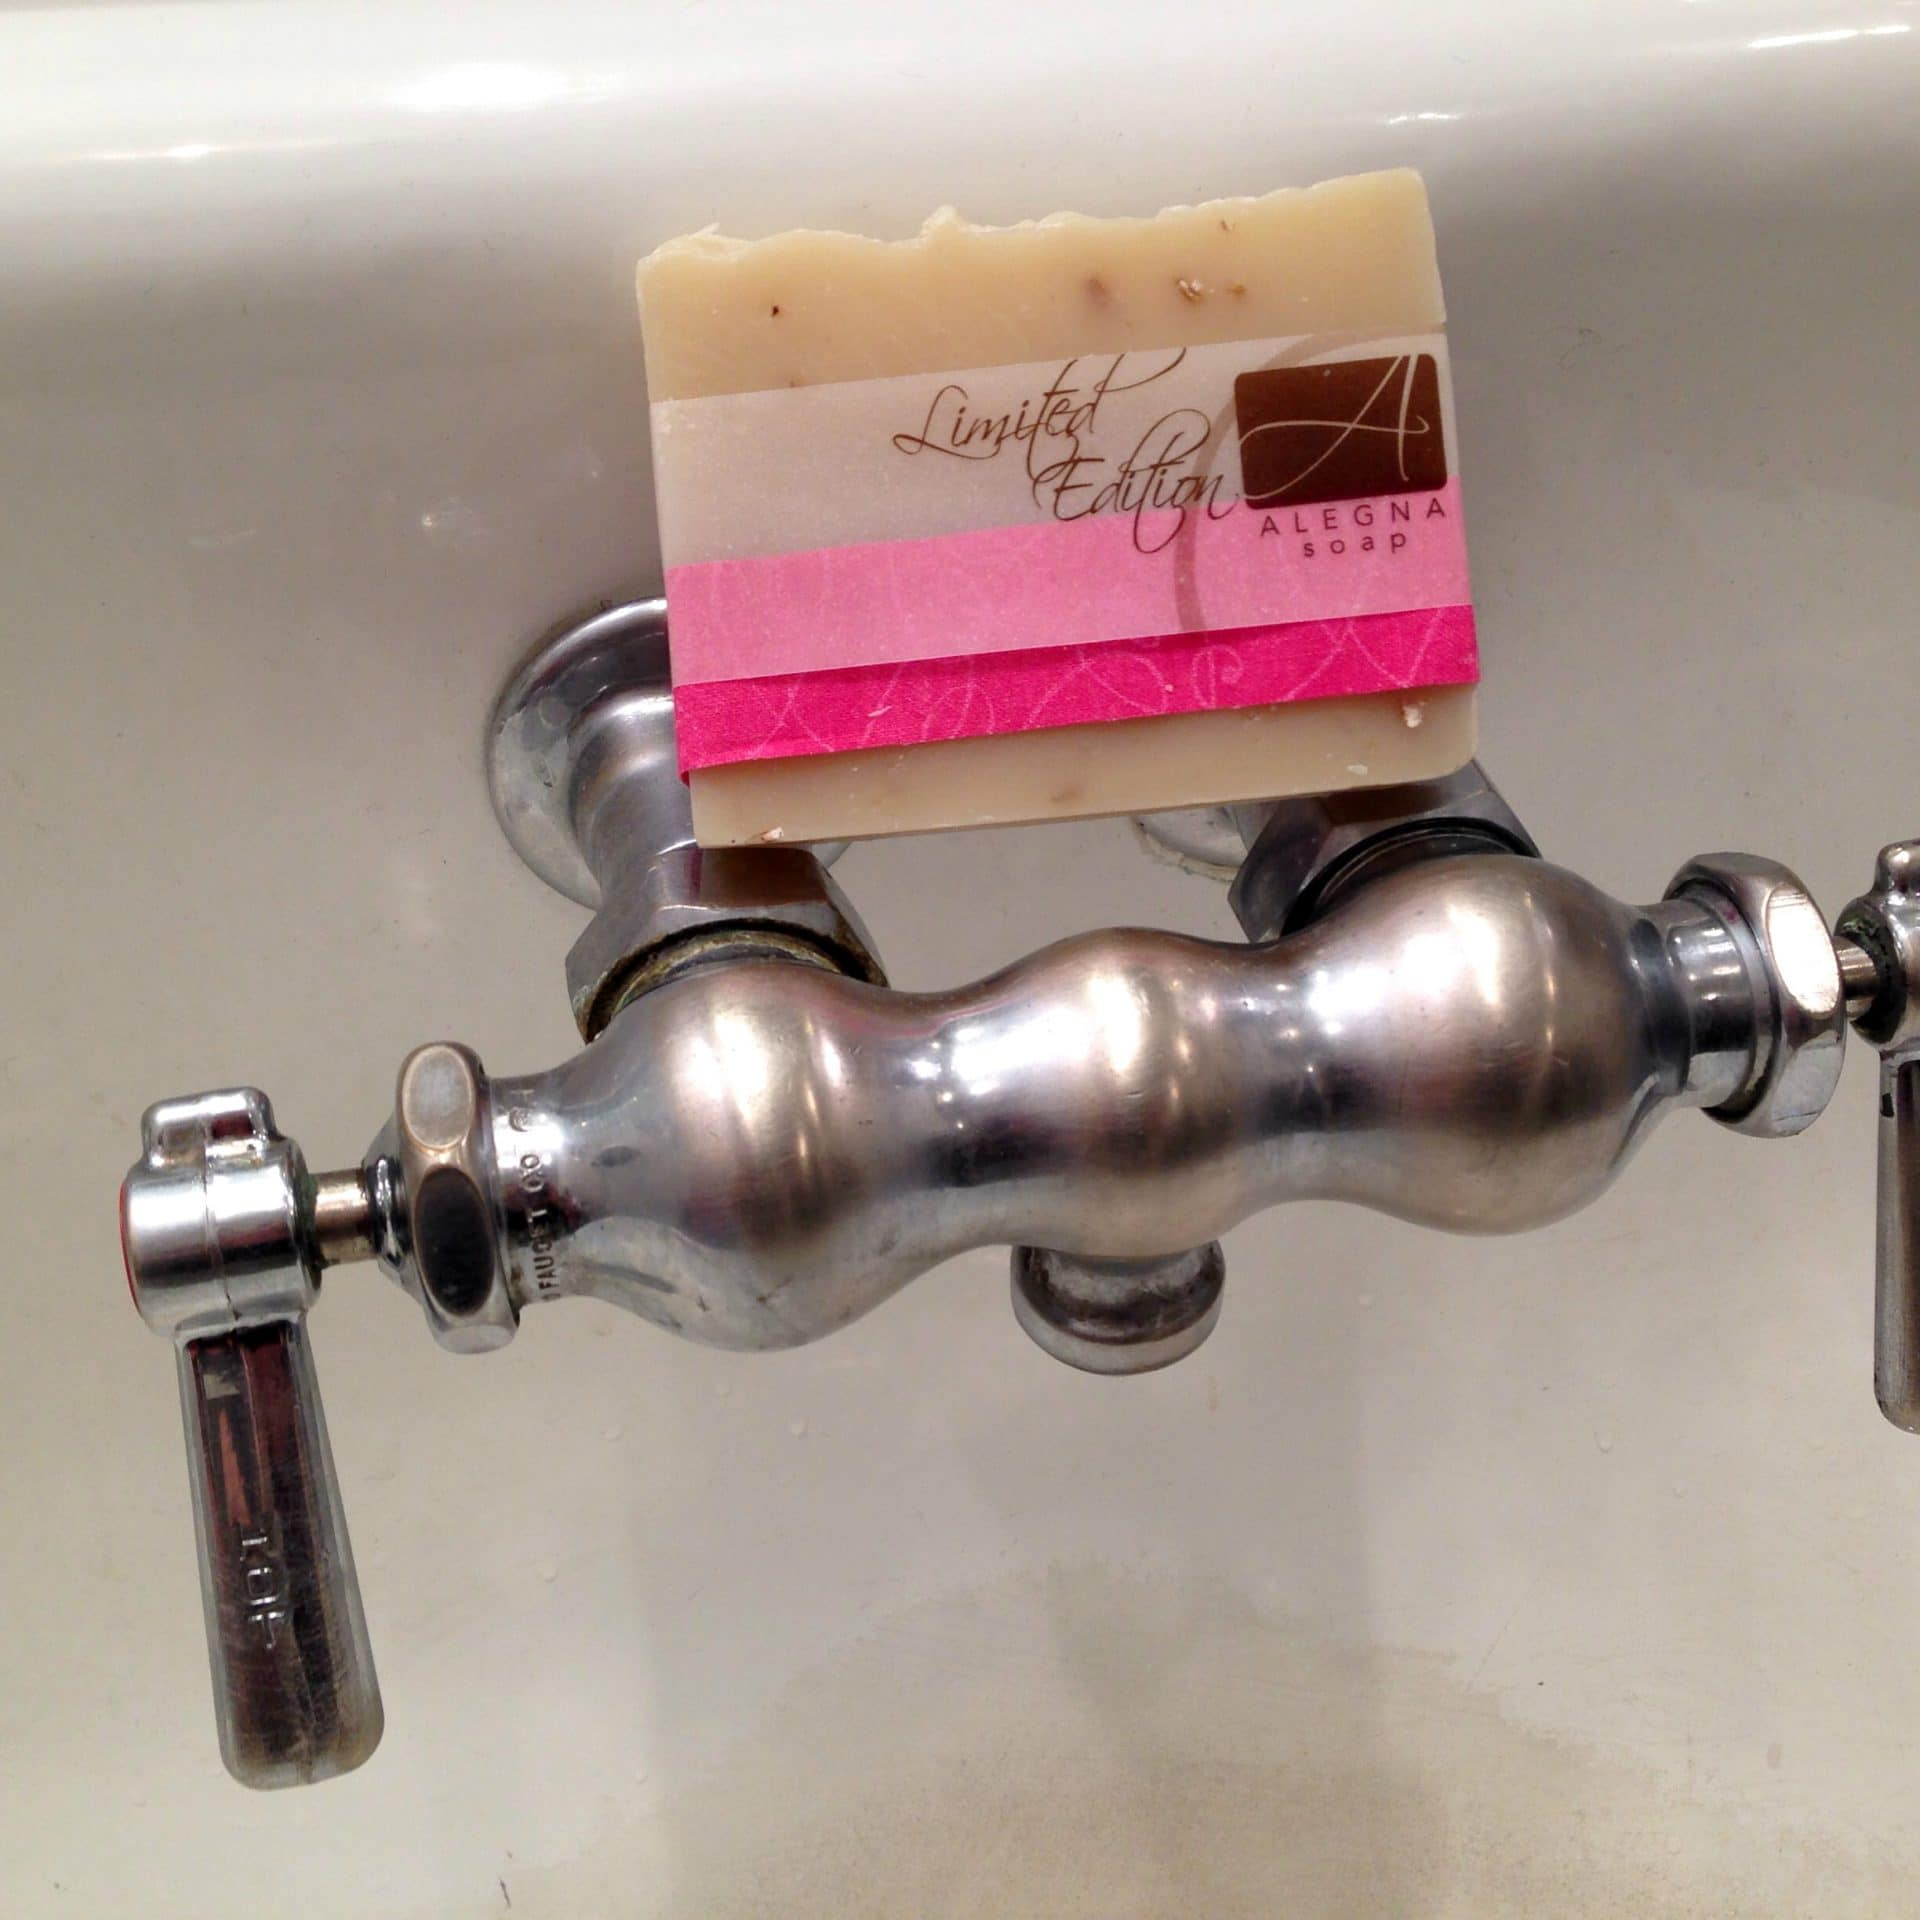 Photo Friday Lavender Oatmeal Soap and Barbuto NYC